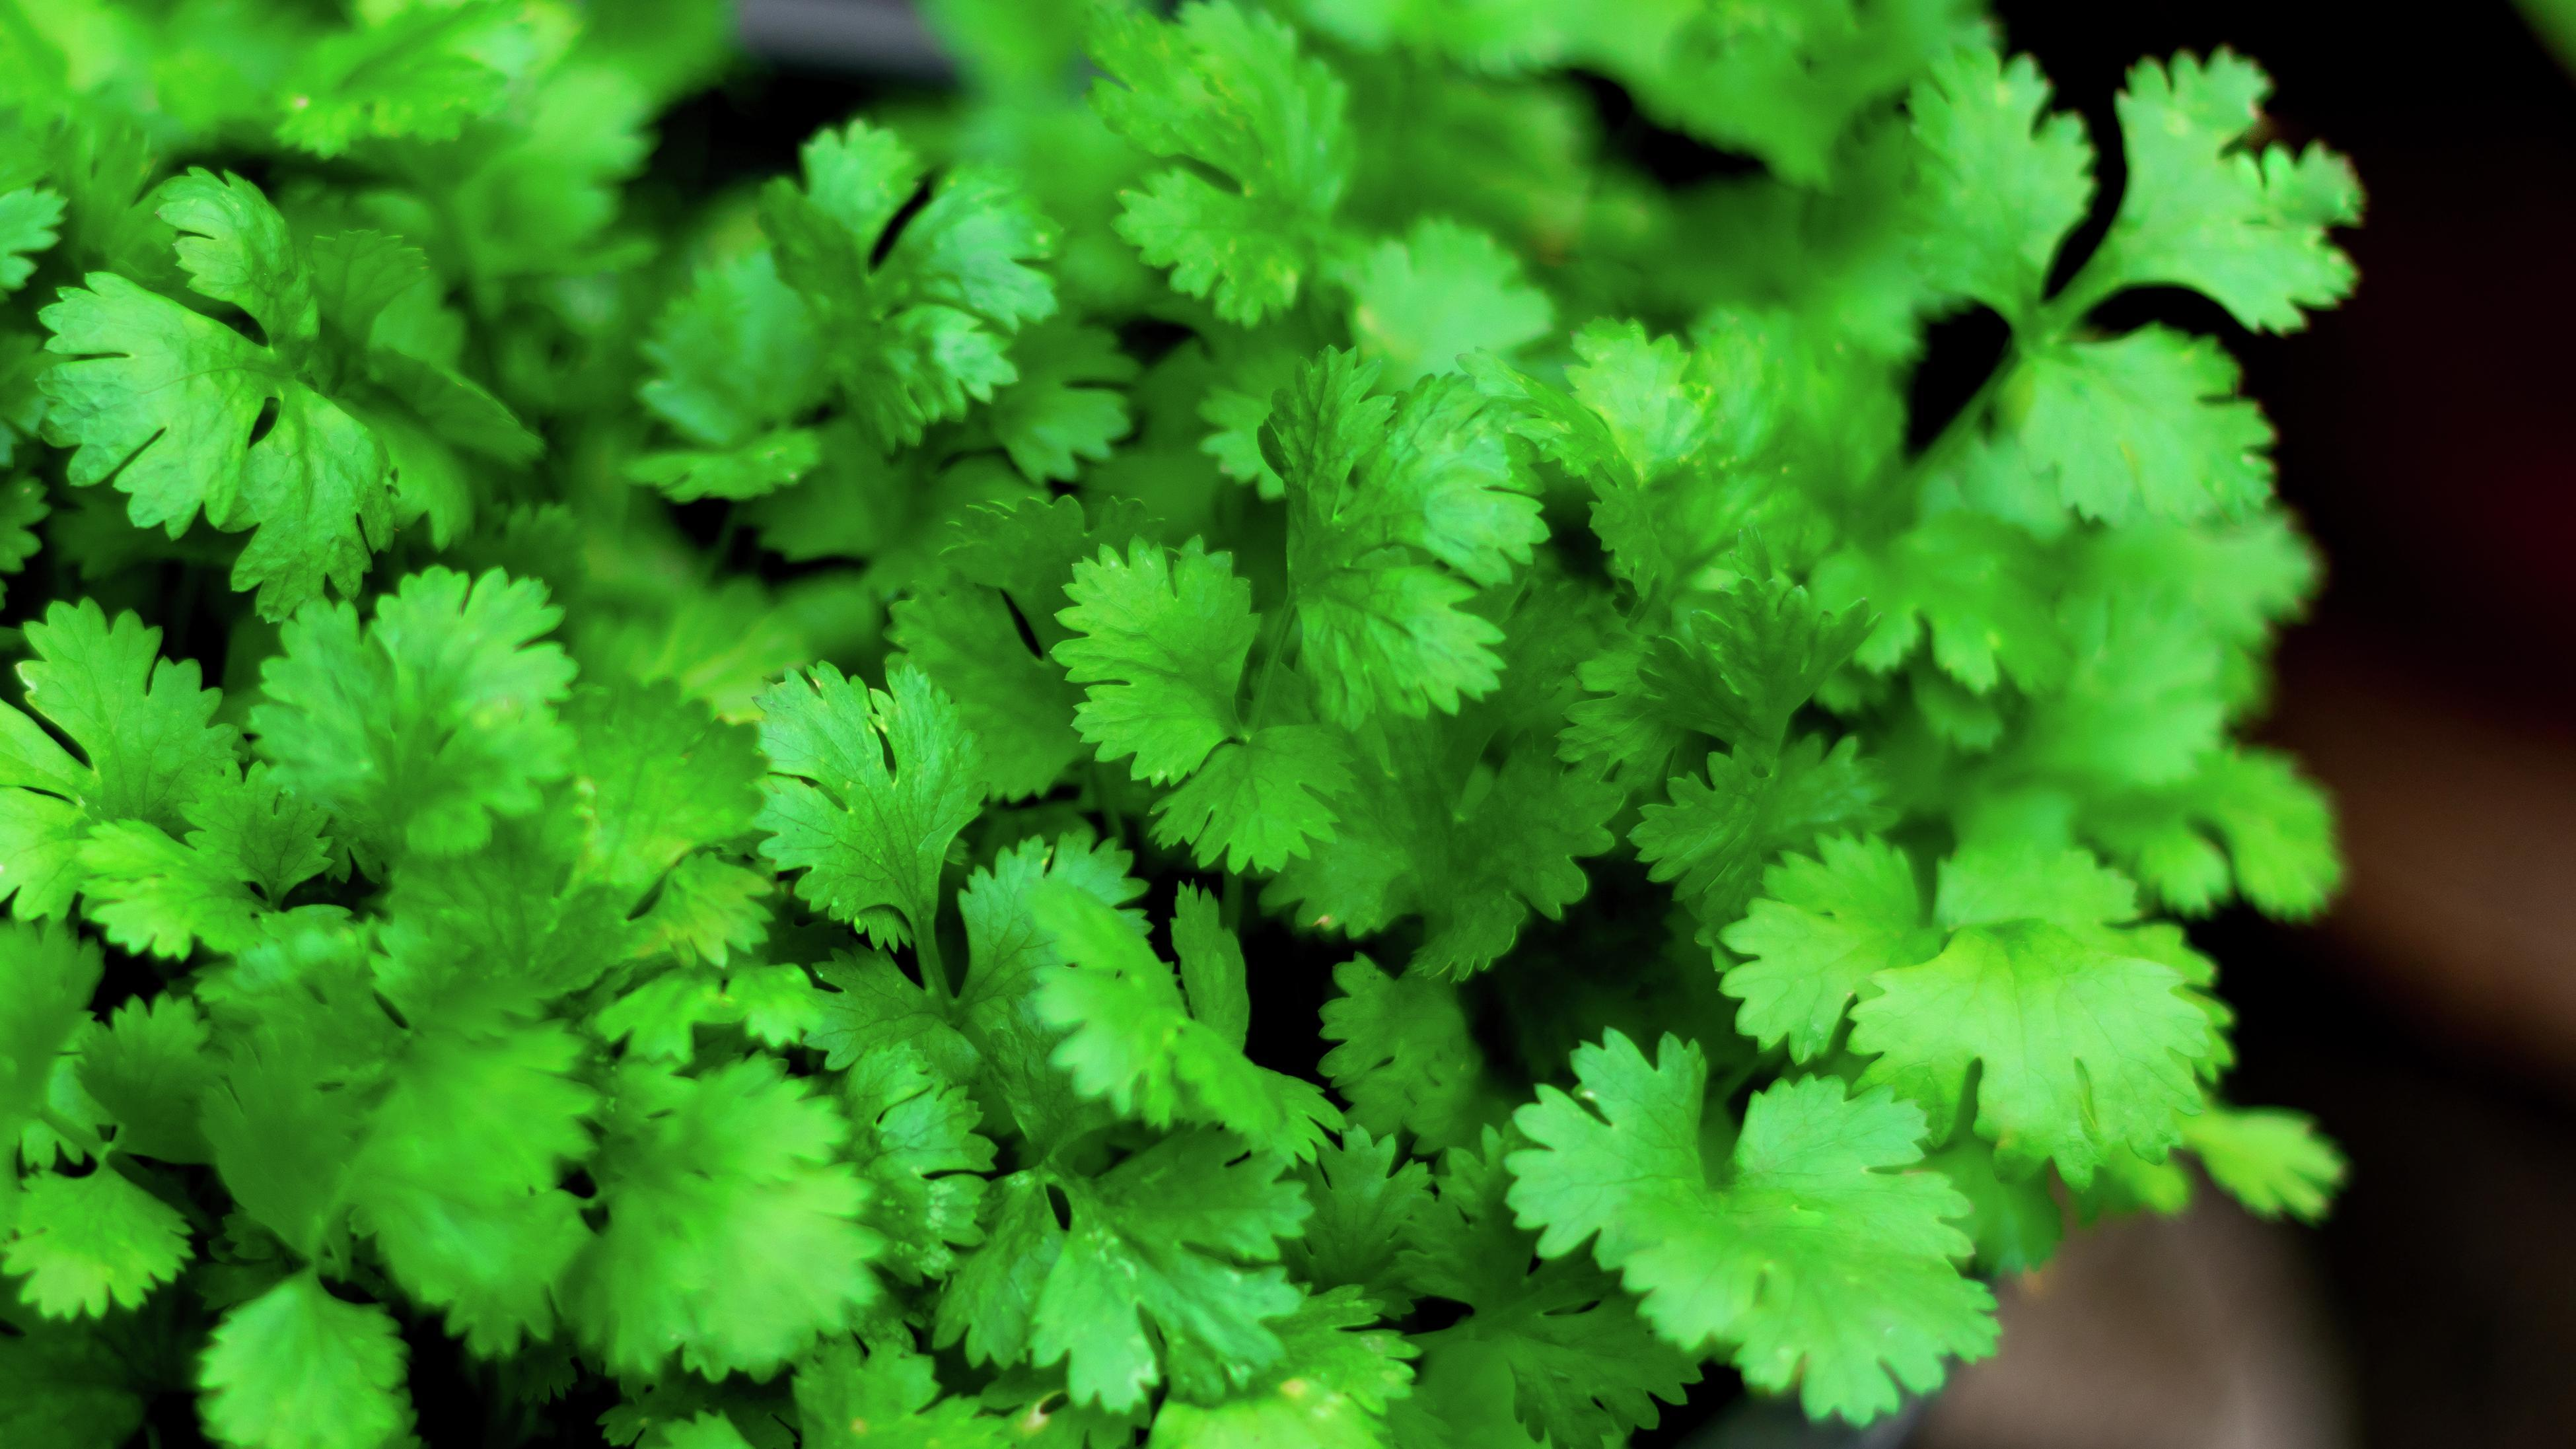 A close-up of coriander leaves